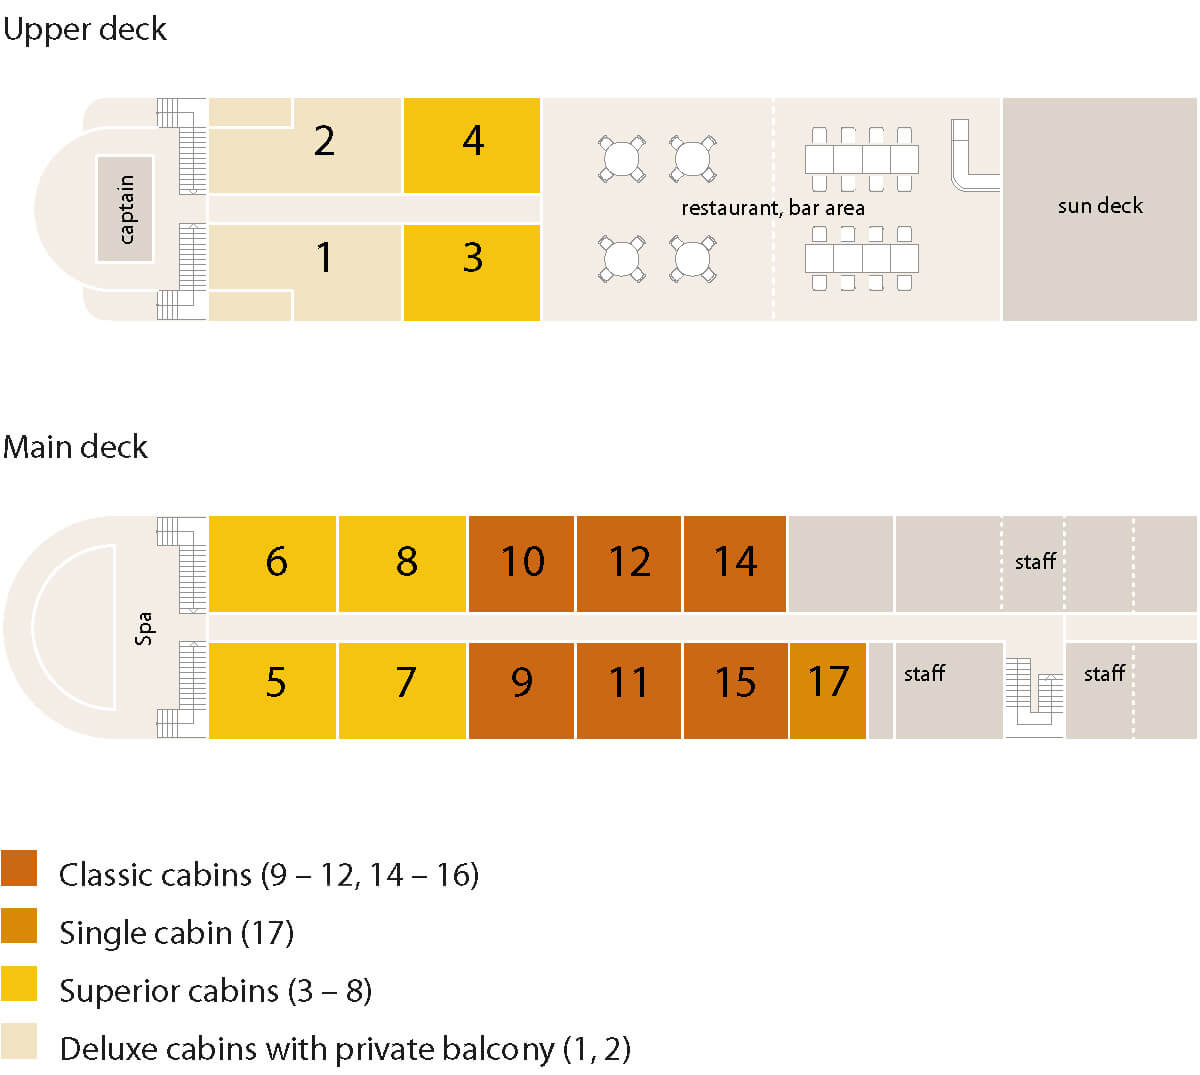 mekong pearl cruise deck plan